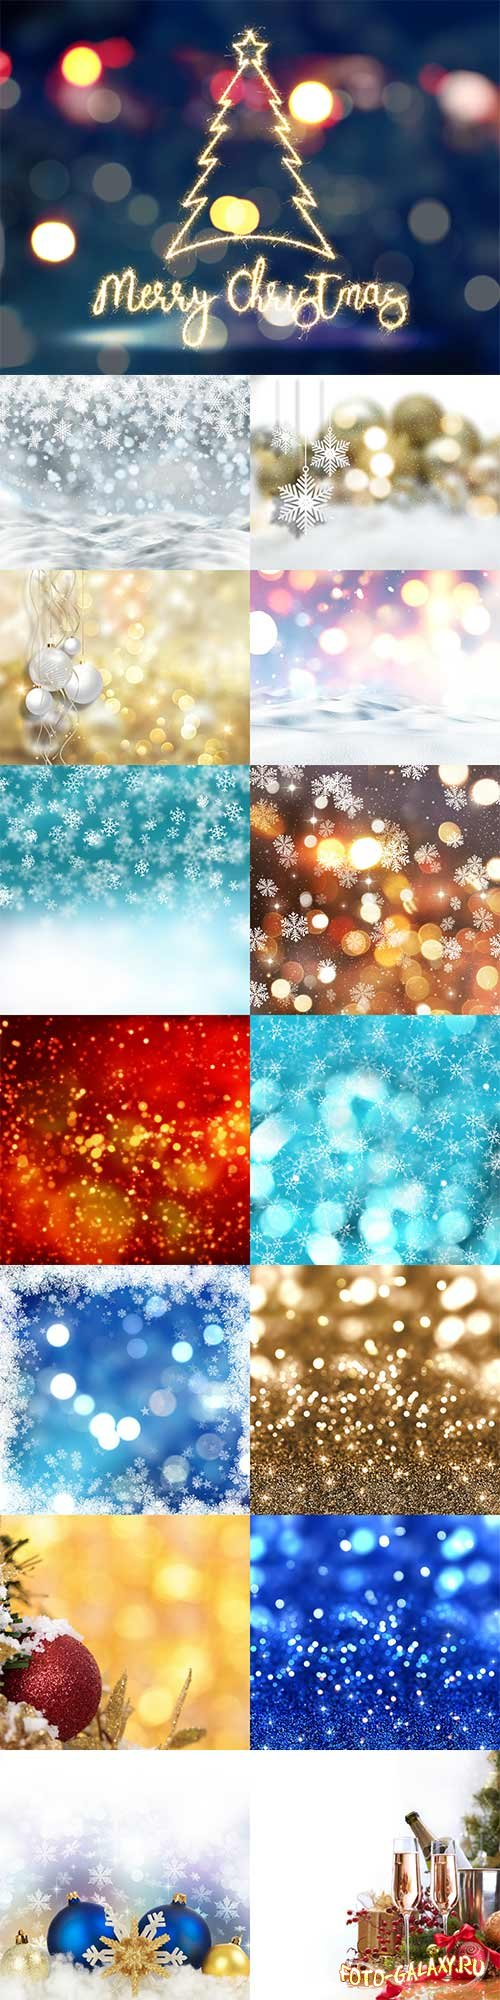 Christmas bitmap backgrounds 7